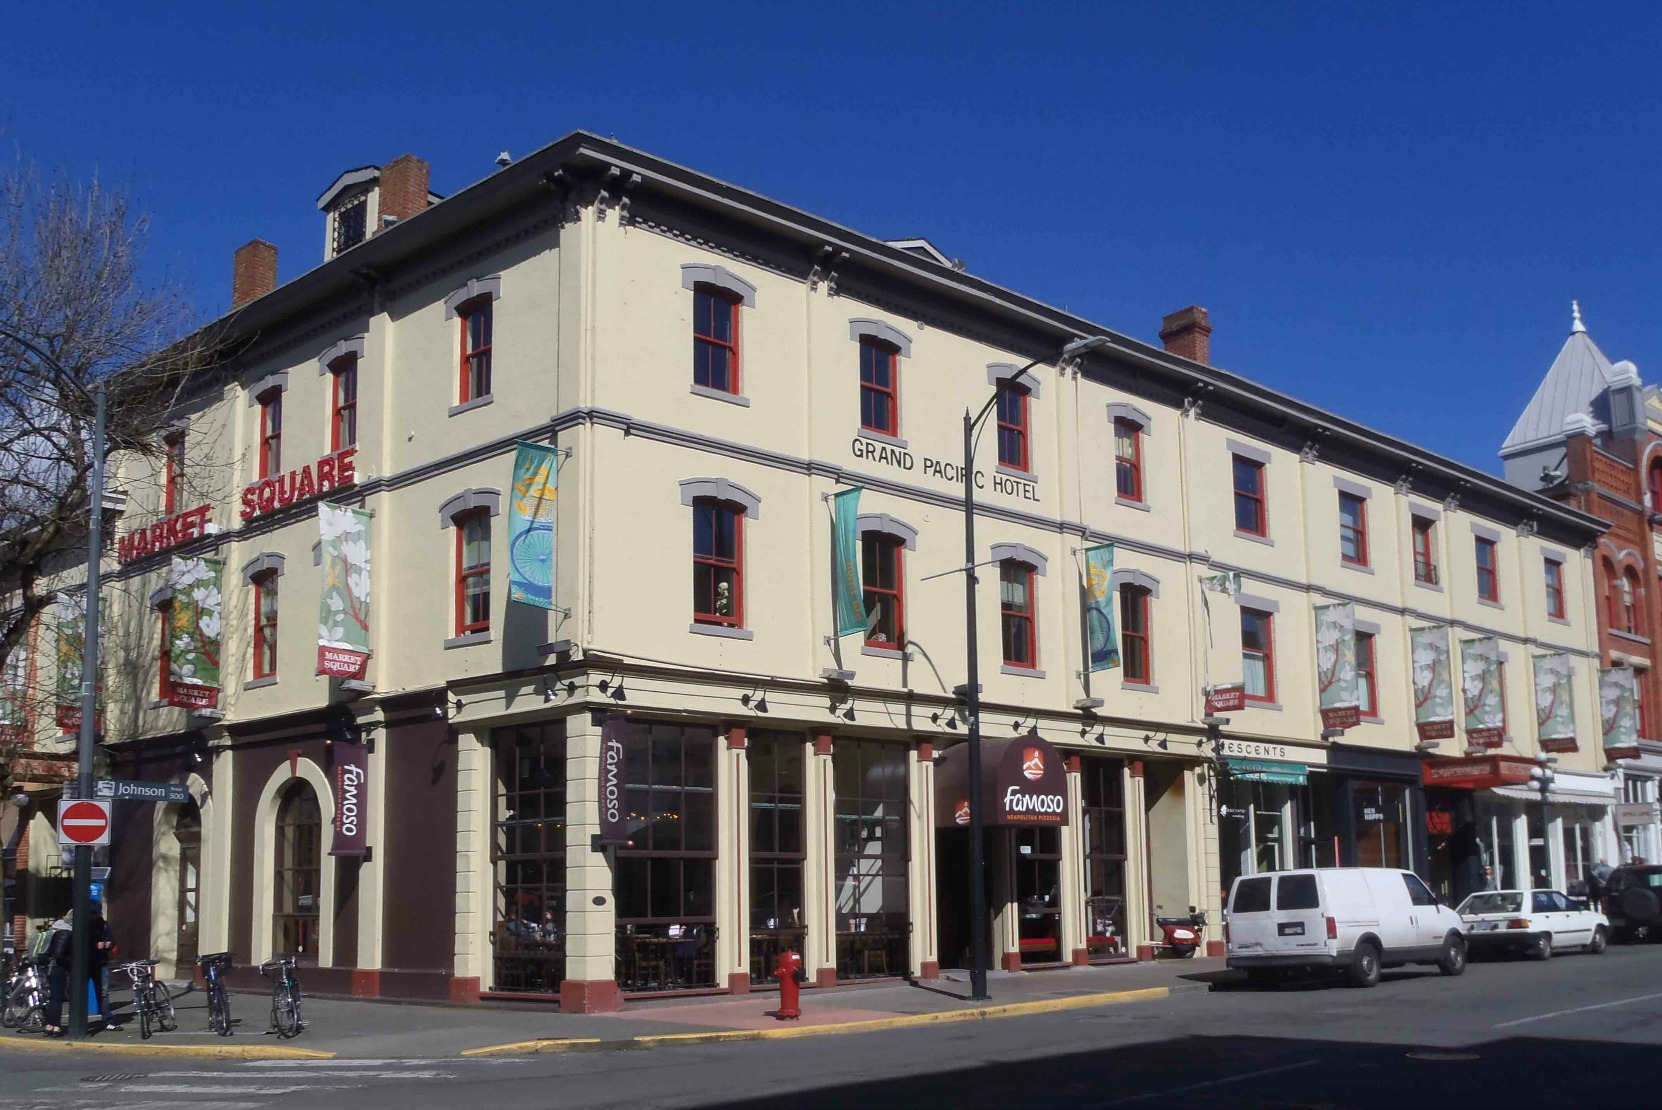 530-540 Johnson Street, Victoria, B.C. Originally built in 1879 by Giacomo Bossi as the Grand Pacific Hotel. (photo by Temple Lodge No. 33 Historian)